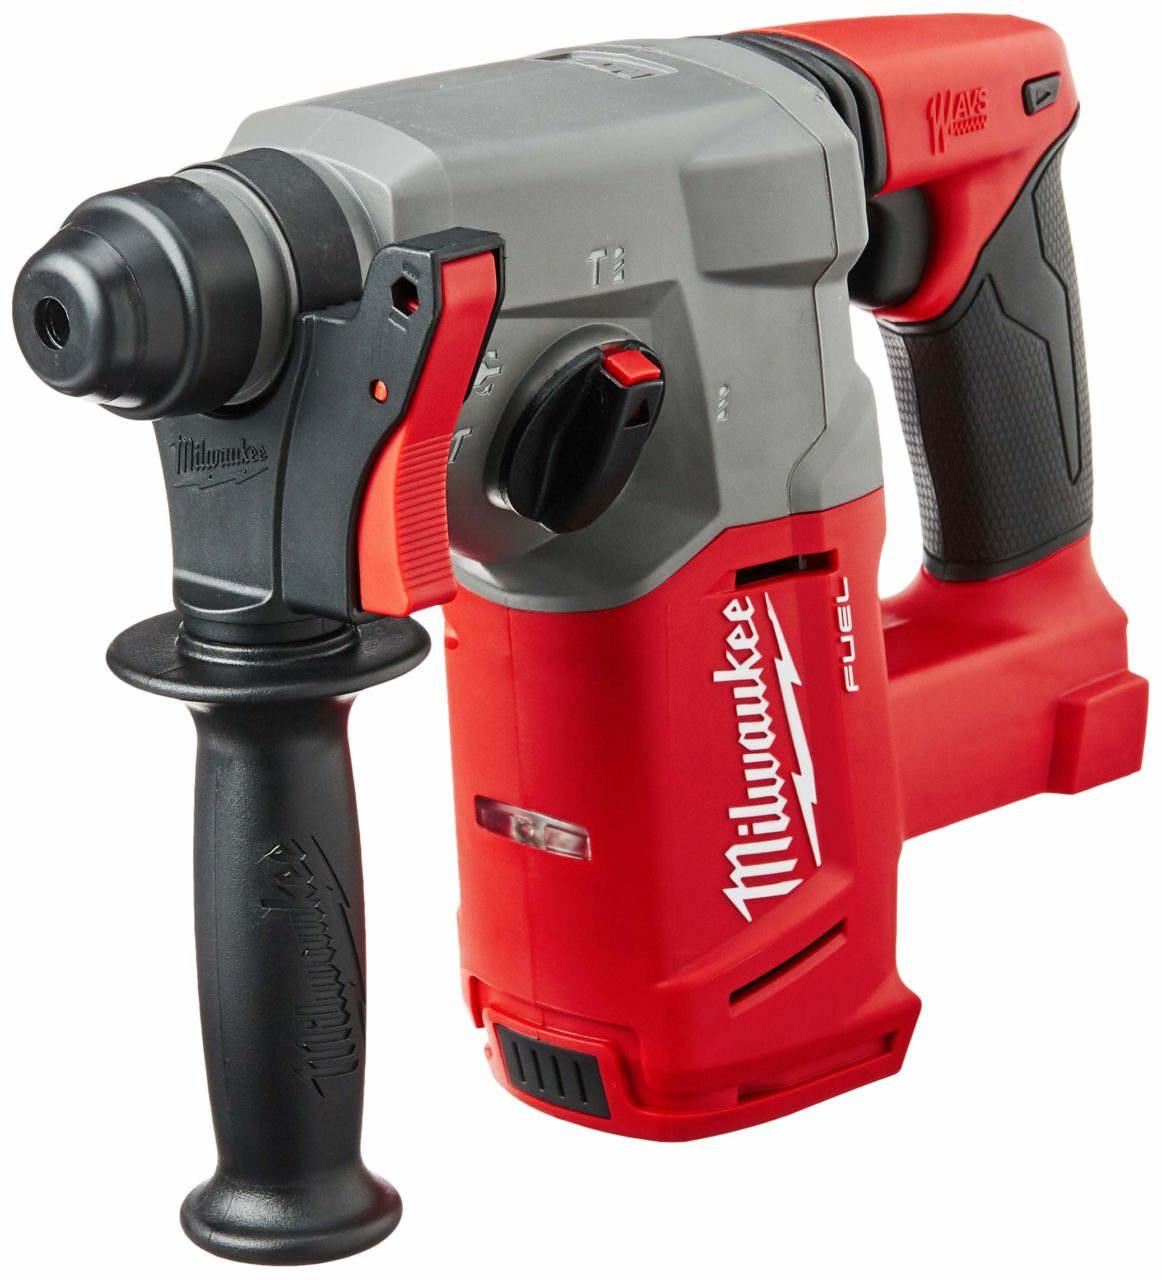 Best Rotary Hammer Drill for Concrete Milwaukee 2712-20 SDS Cordless Rotary Hammer